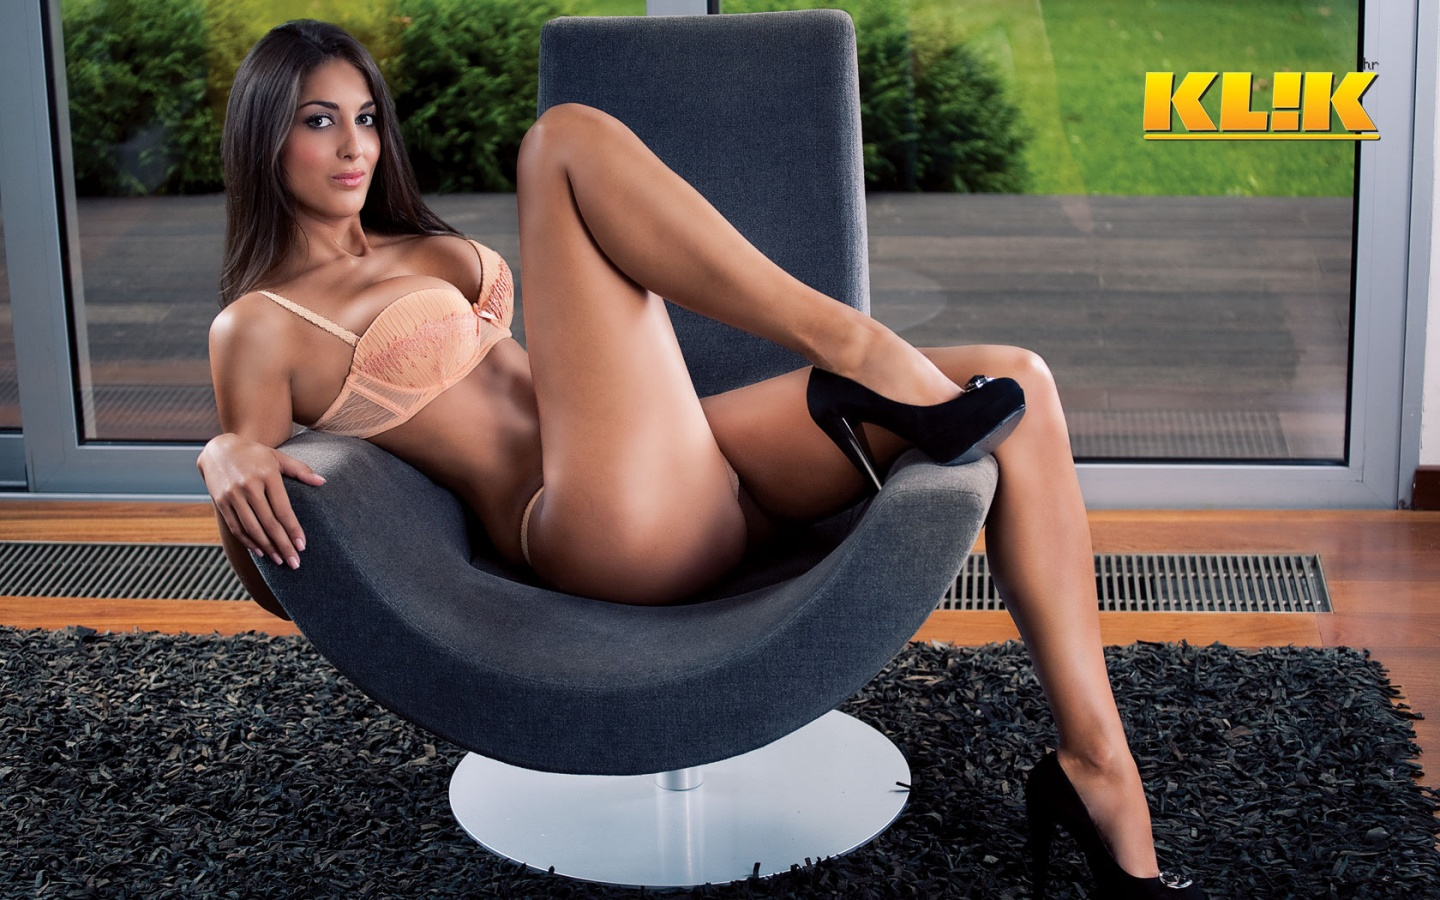 sexy girl pose in hot peach lingerie with hot slim long legs and